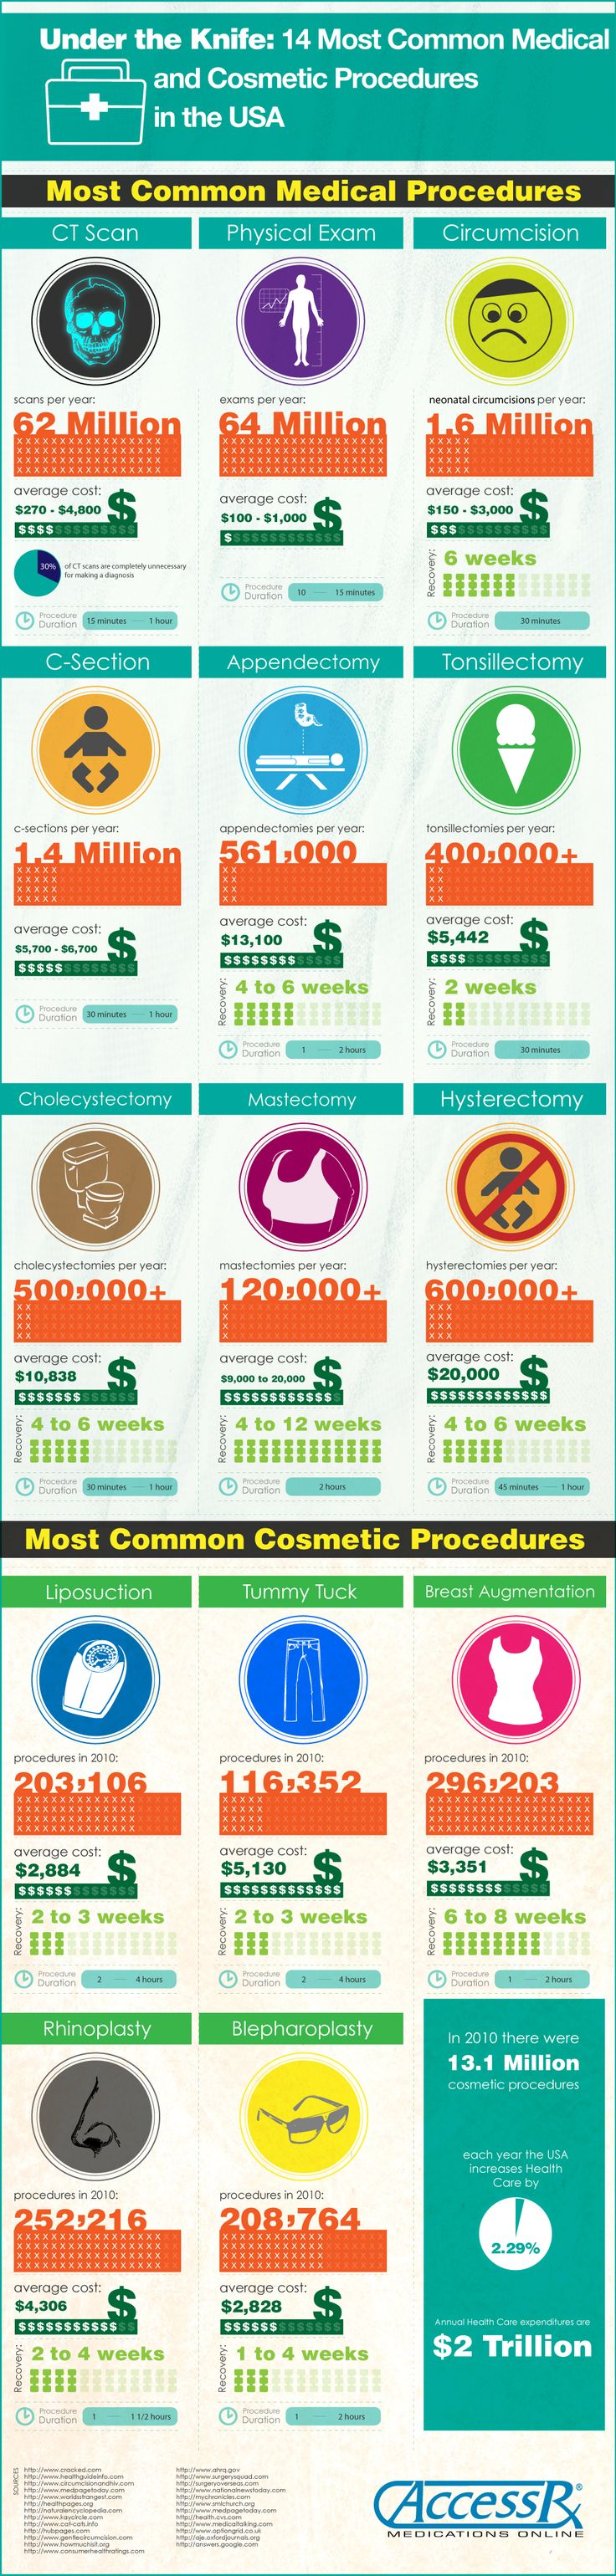 Slicin' & Dicin' in the USA [infographic]  14 Most Common Medical and Cosmetic Procedures in the USA